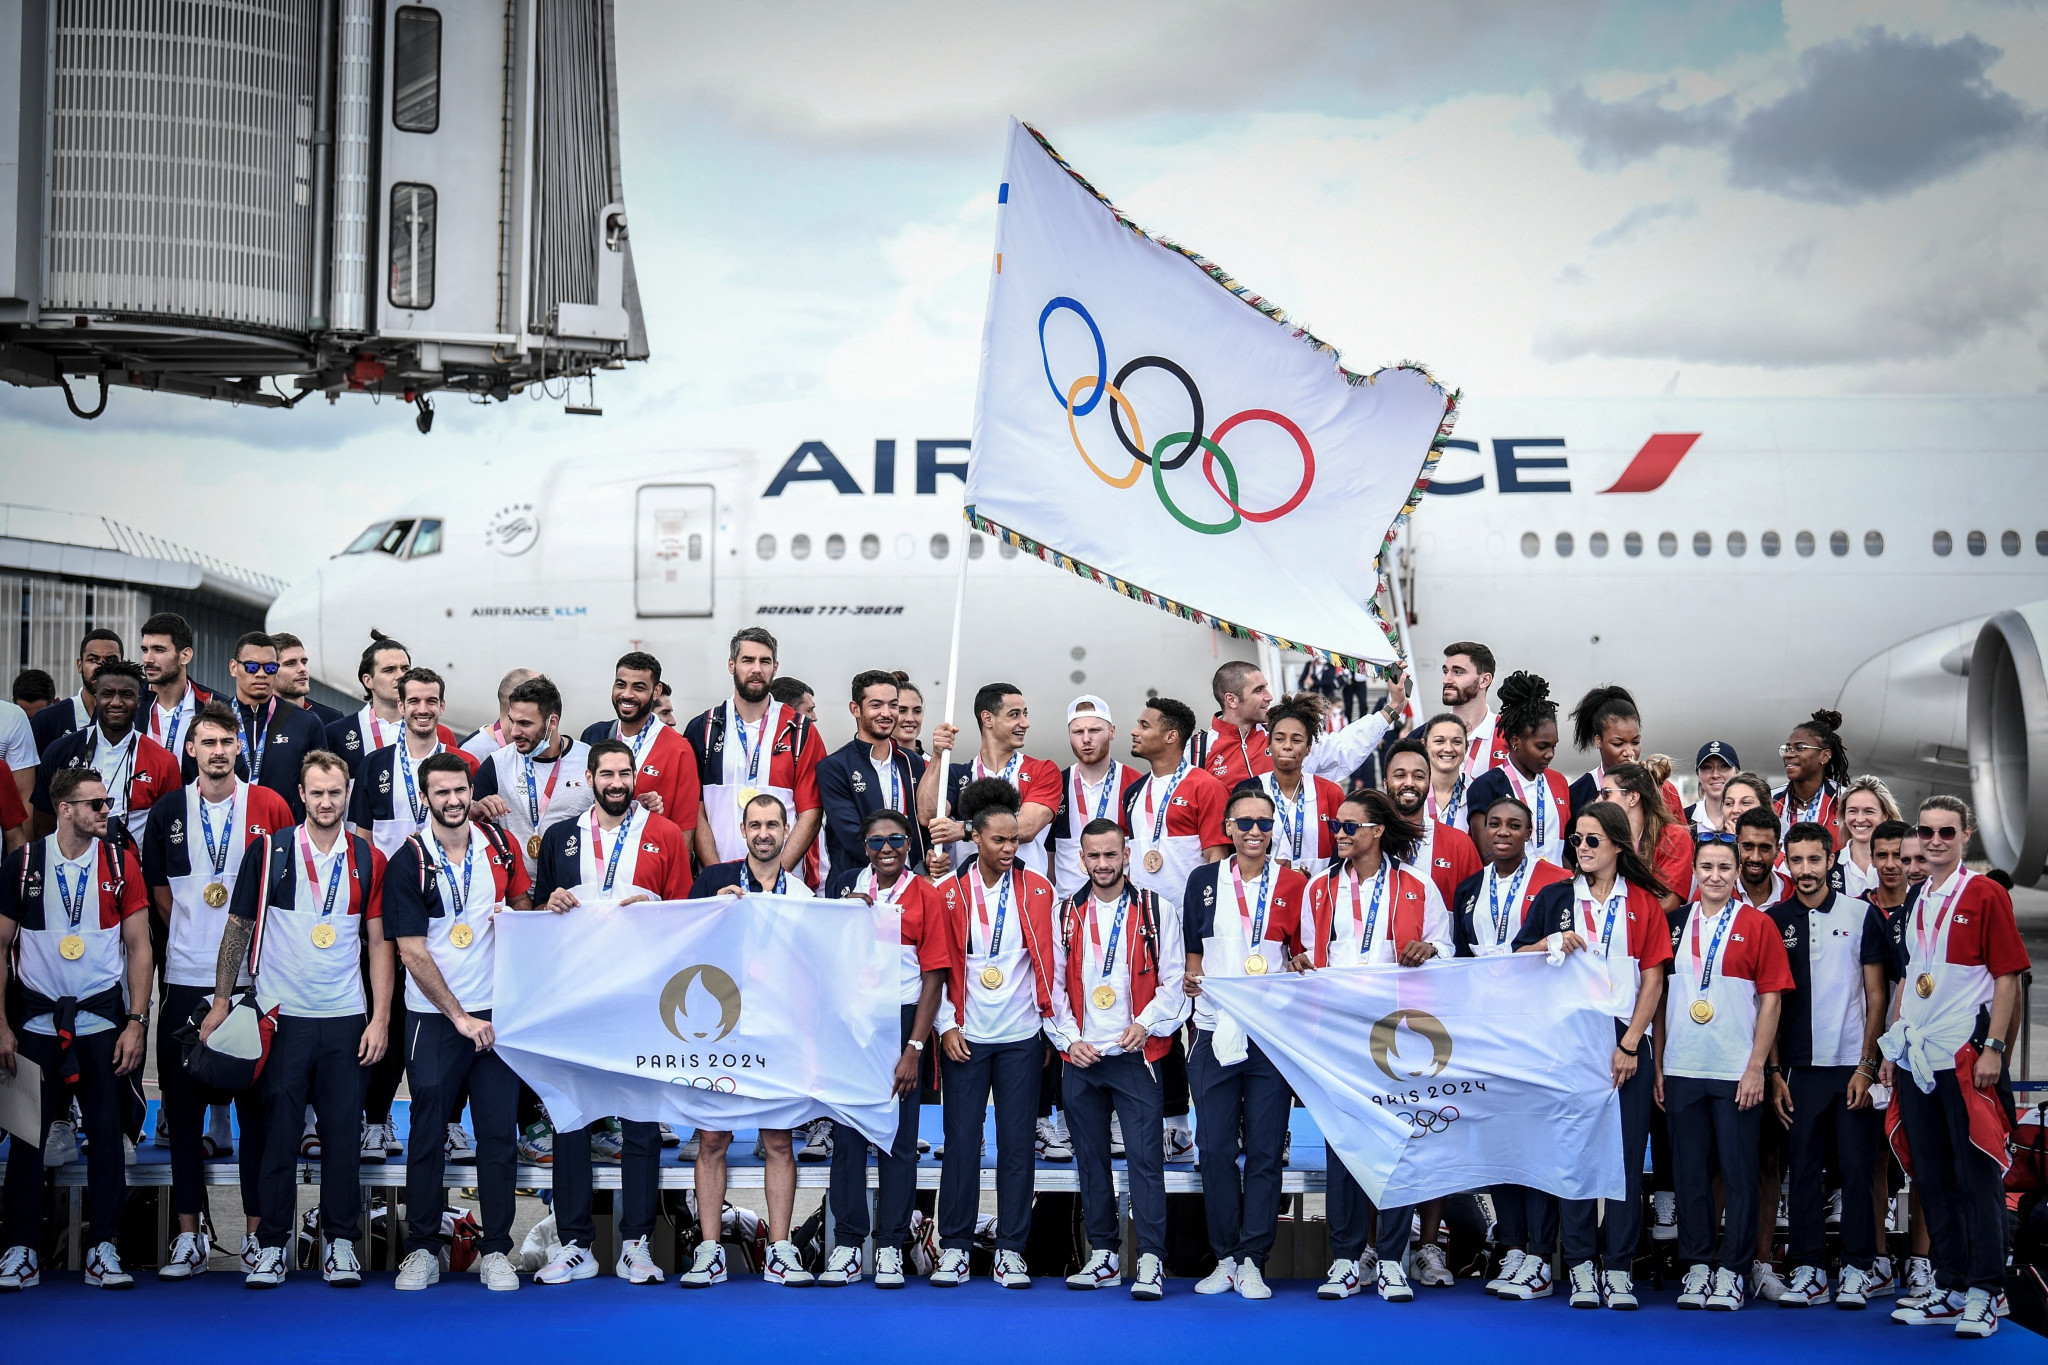 Newly-appointed chief of staff Skander Karaa is set to play a key role in preparations for the Paris 2024 Olympic Games ©GettyImages